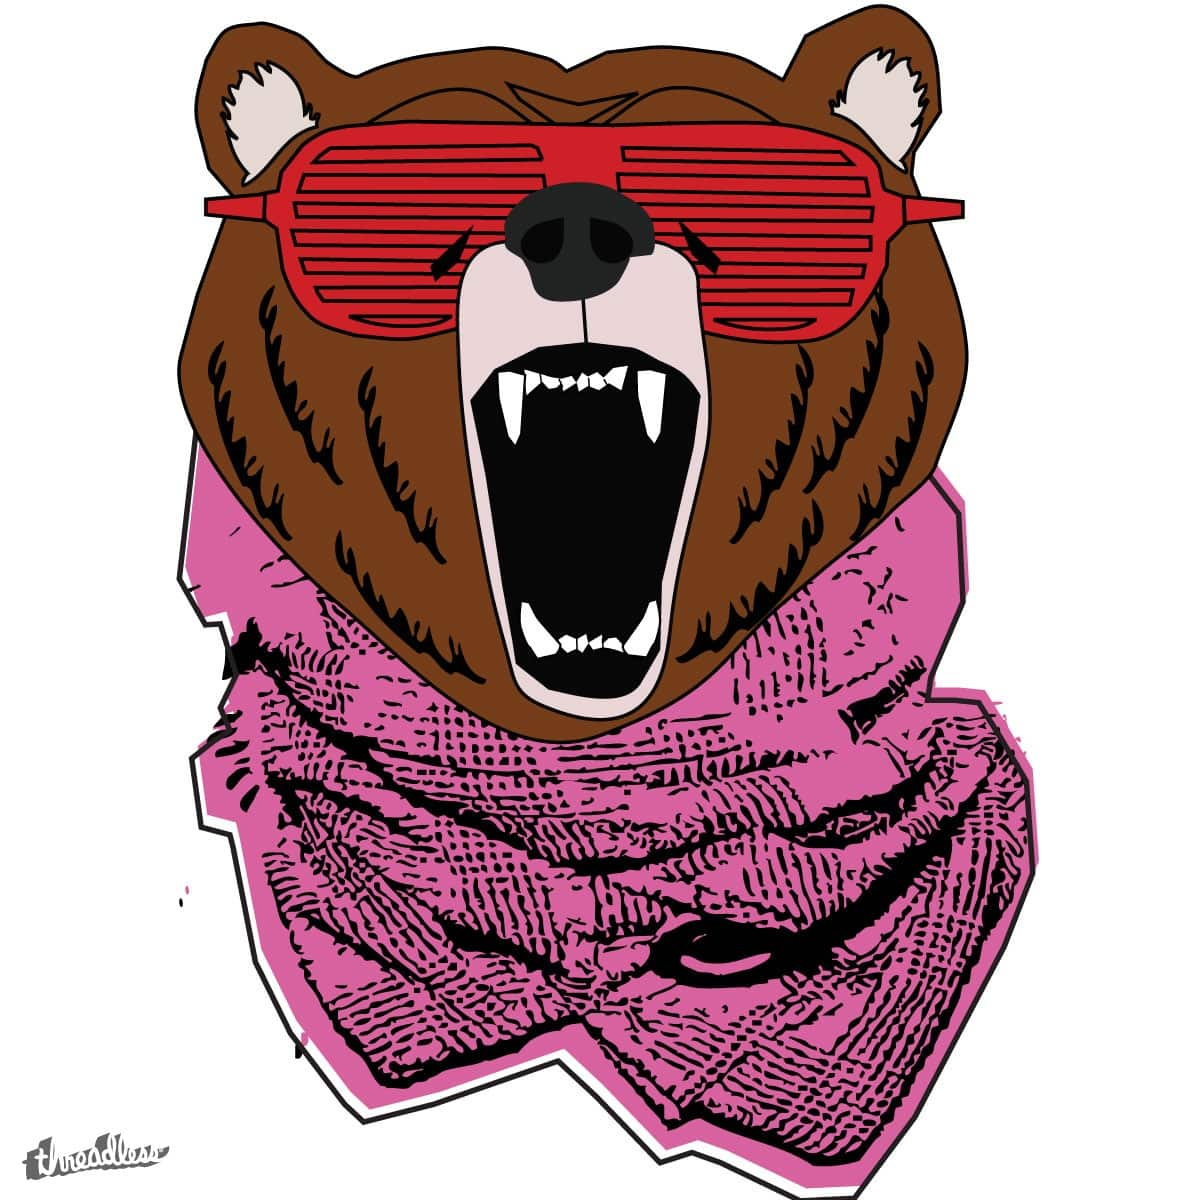 kanye bear scream  by bansom on Threadless